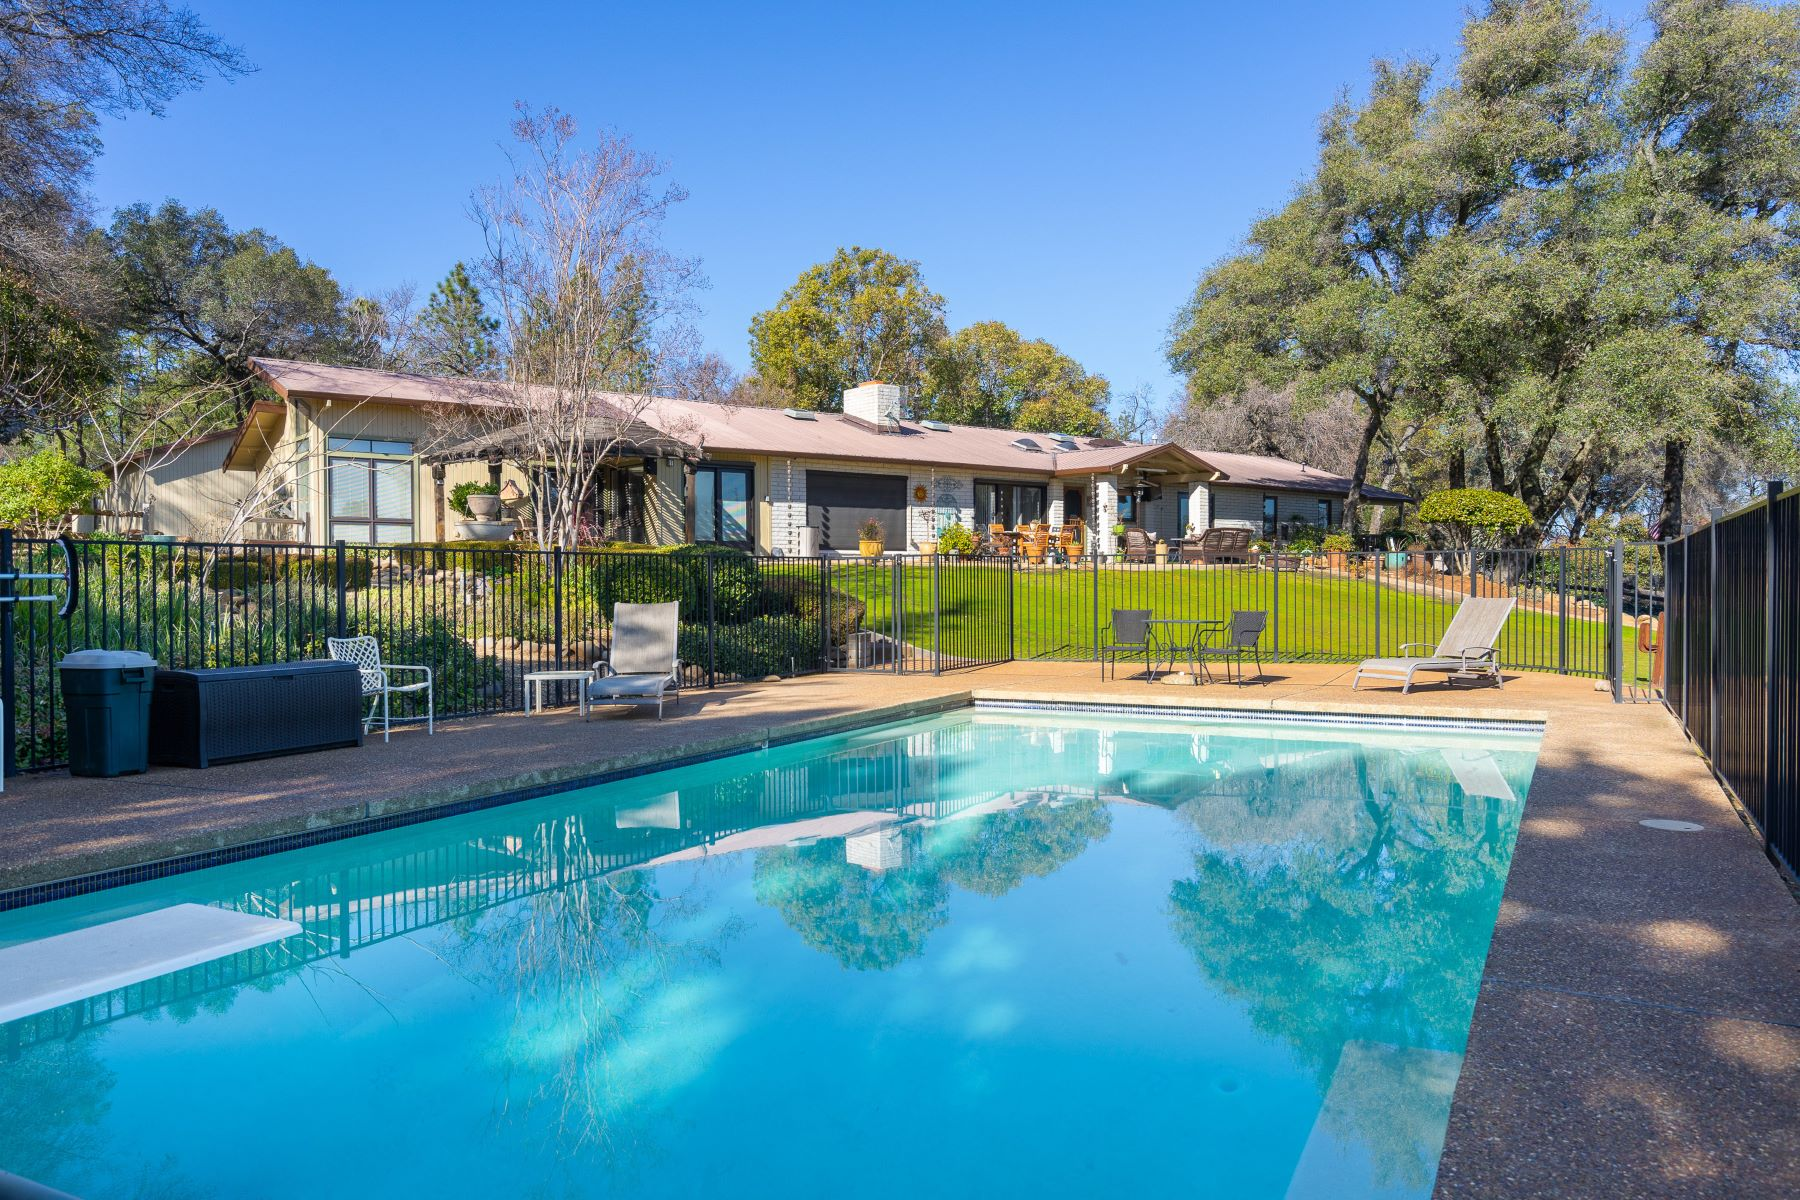 Single Family Home for Active at Welcome Home to this Stunning Property located in Sutter Creek! 11890 Nugget Lane Sutter Creek, California 95685 United States